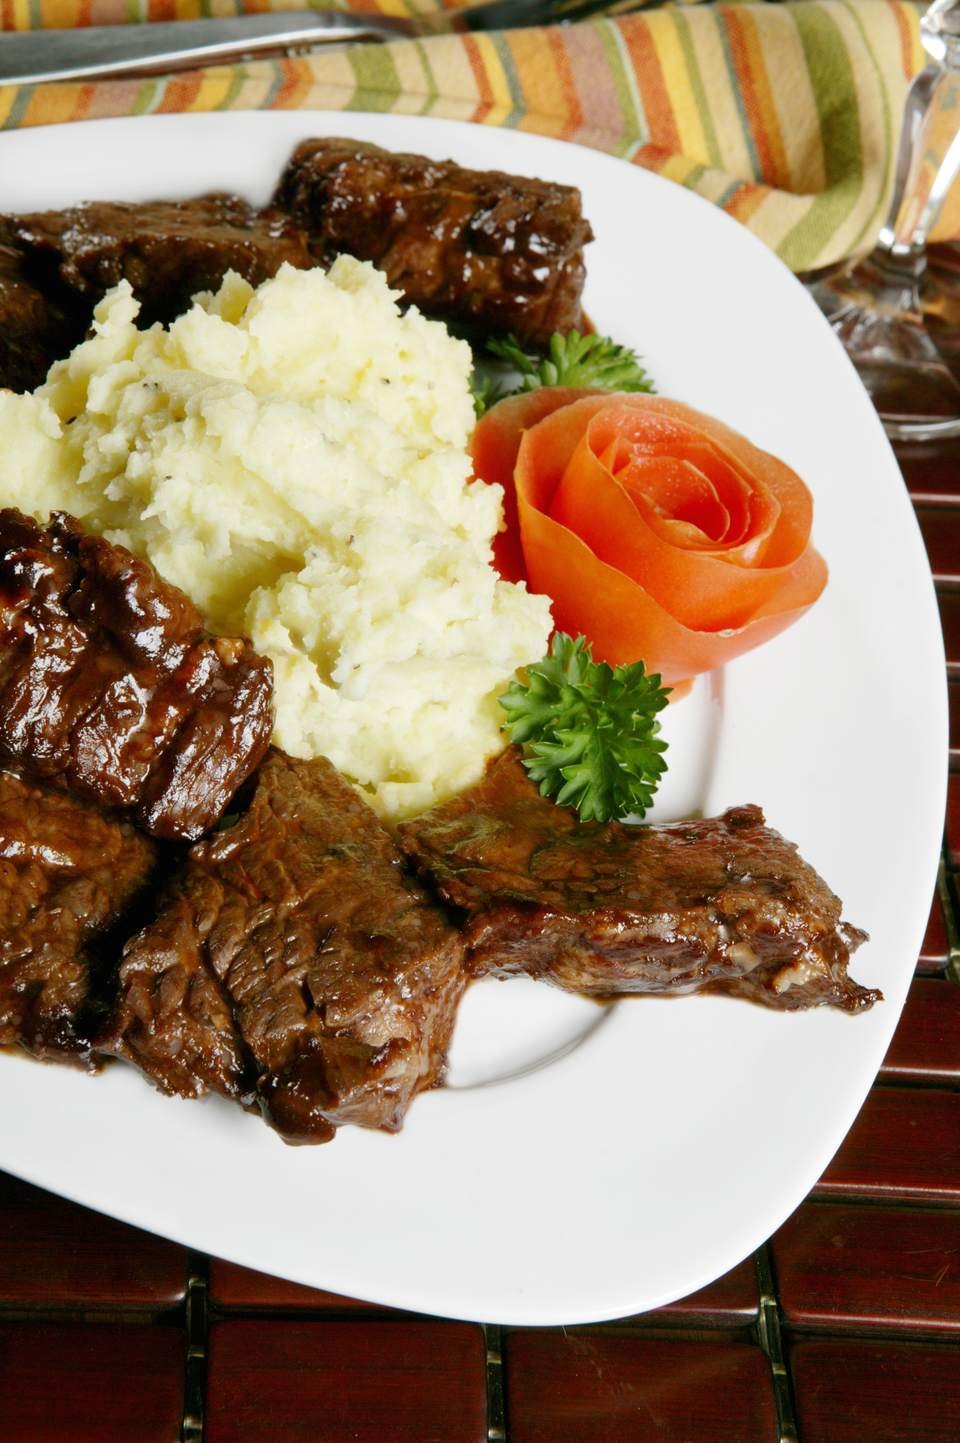 Bourbon Steak Tips with Mashed Potatoes, From Above